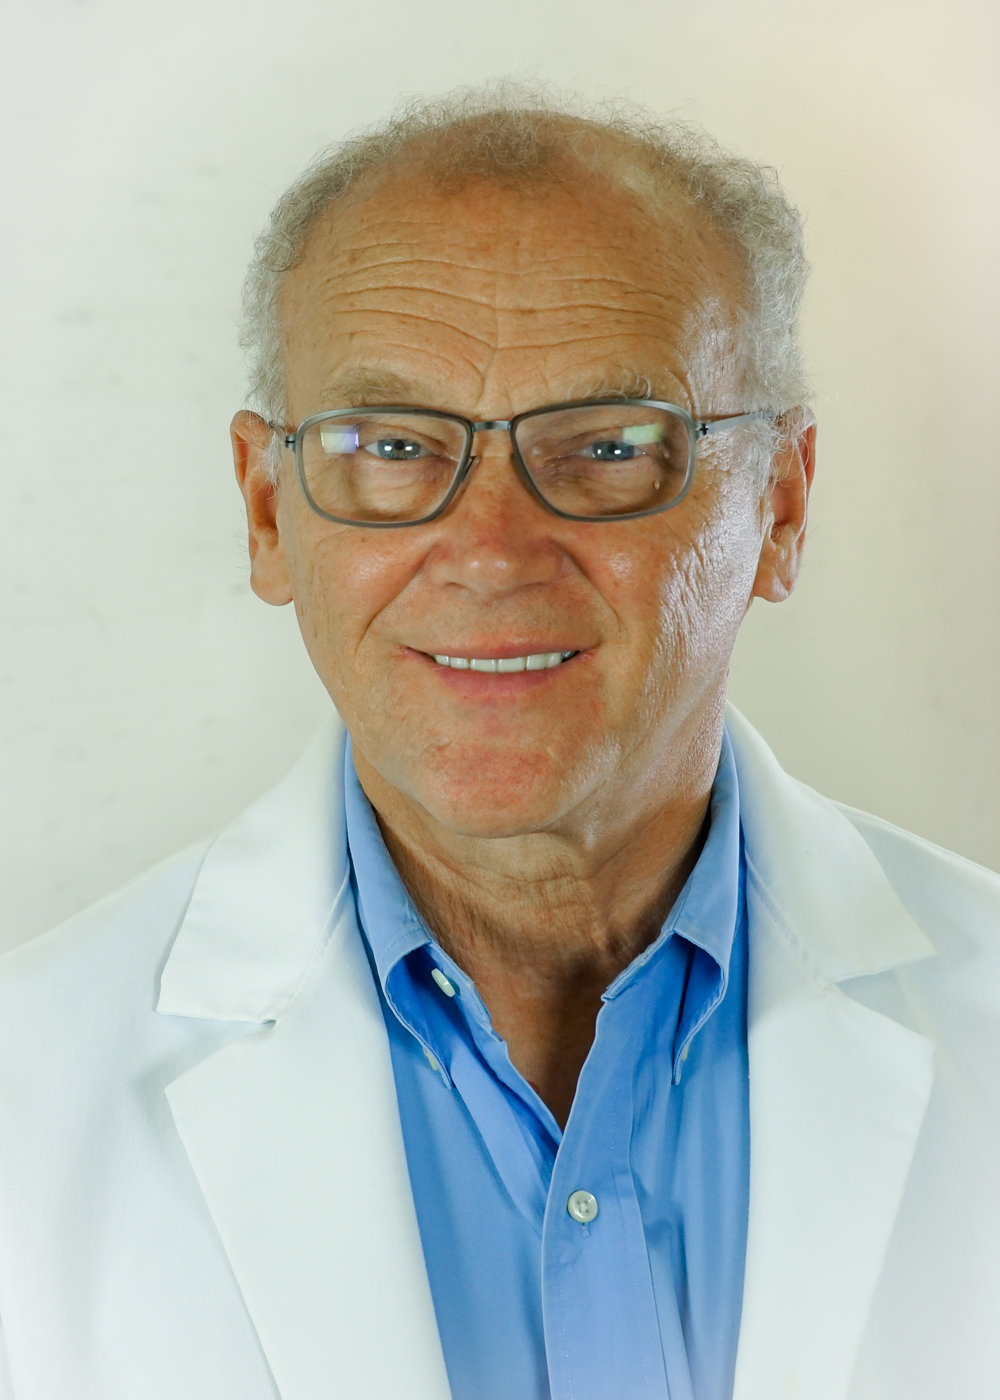 Founding Practitioner - Dr. Peter Kadar